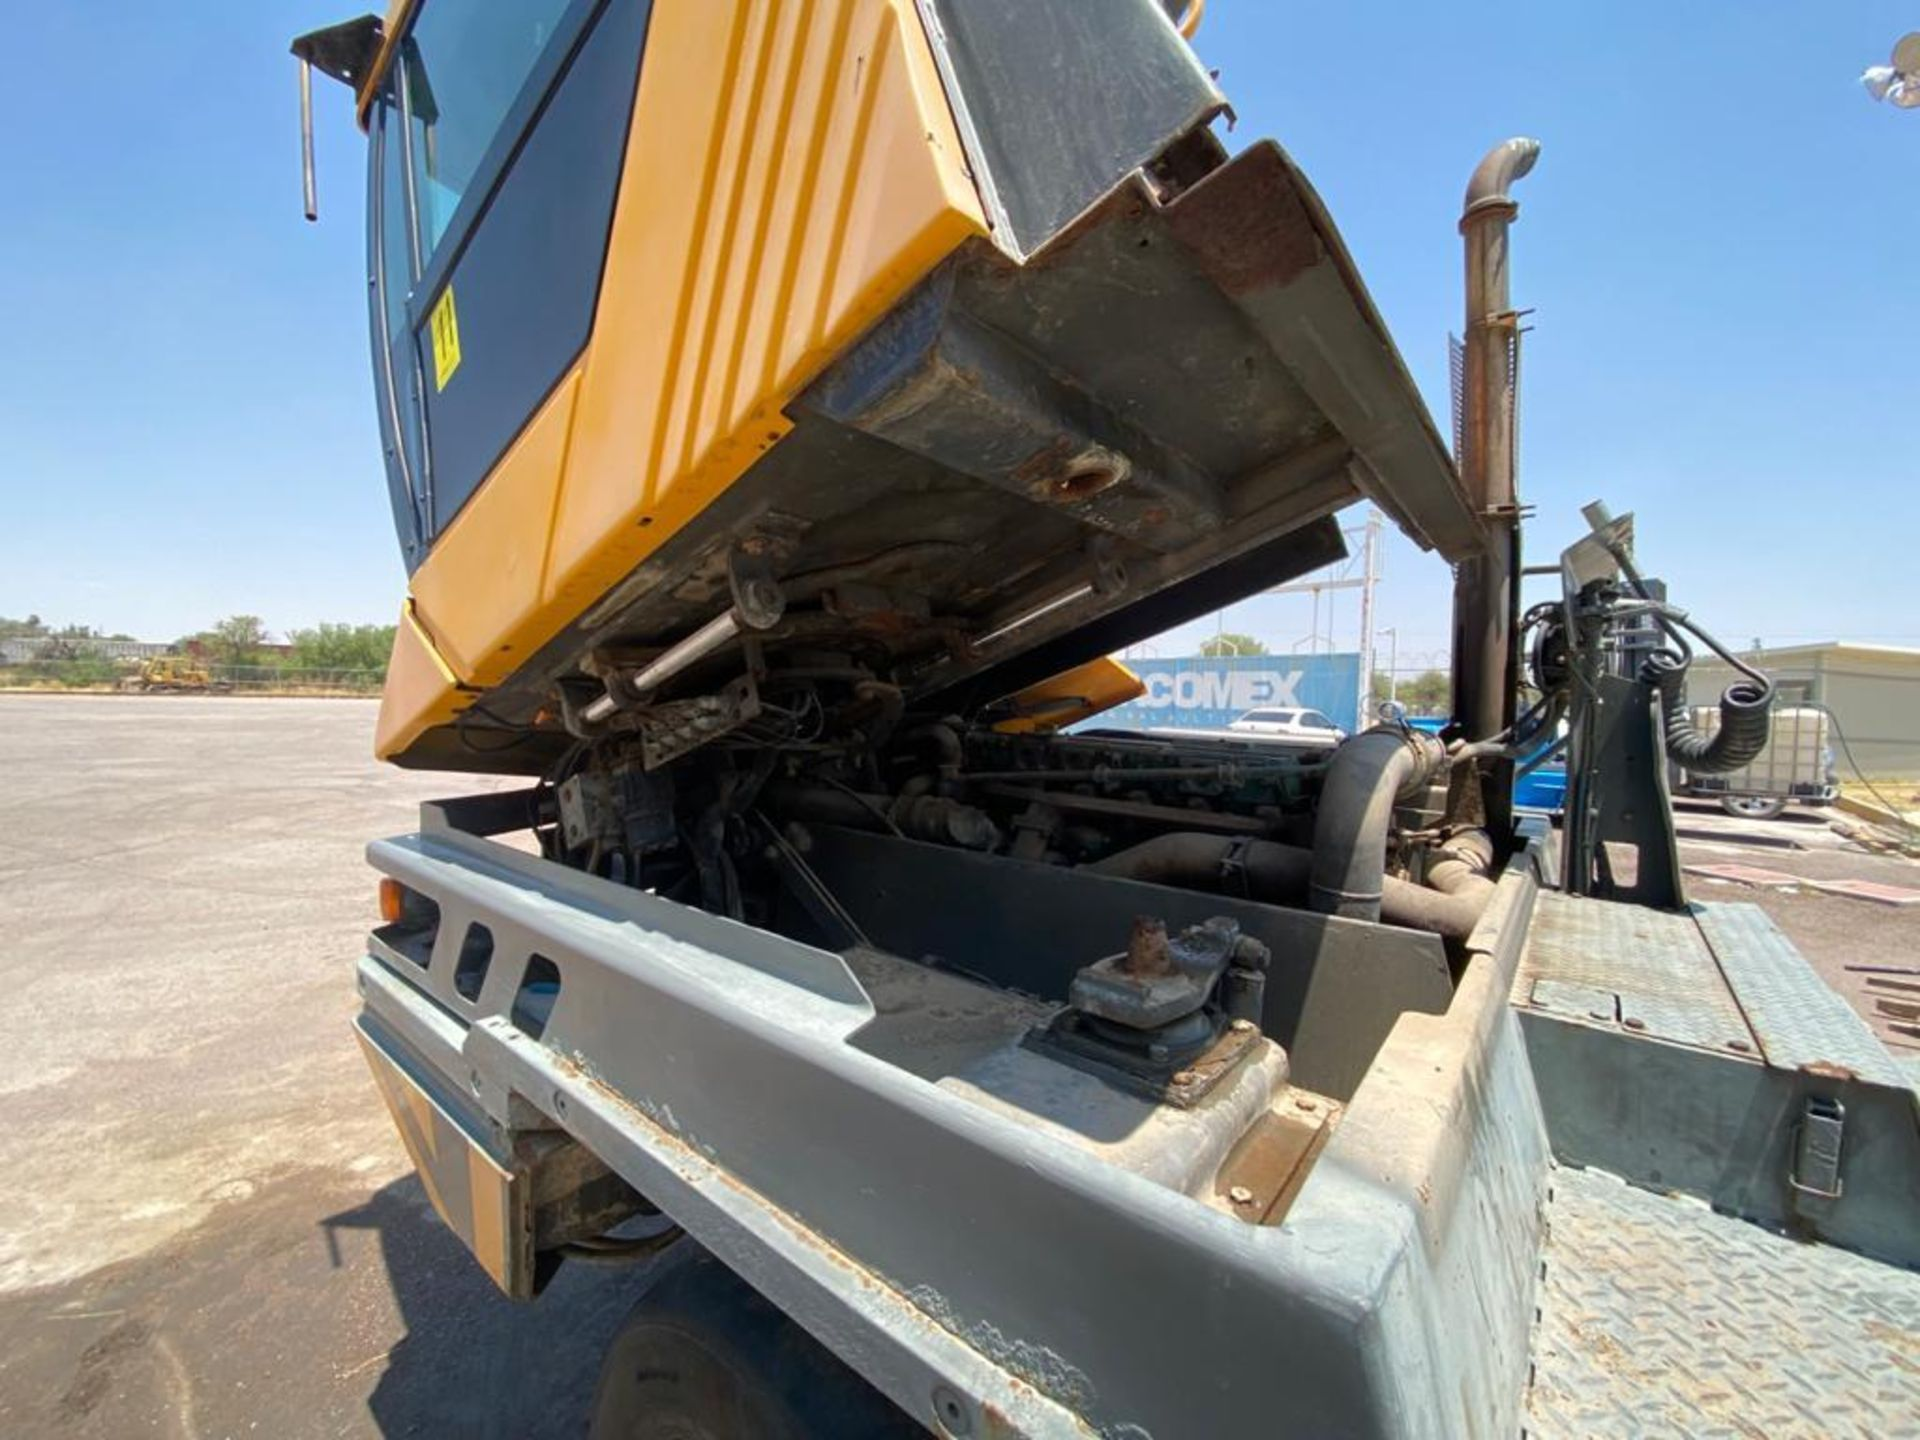 Terberg Capacity 2002 Terminal Tractor, automatic transmission, with Volvo motor - Image 35 of 57